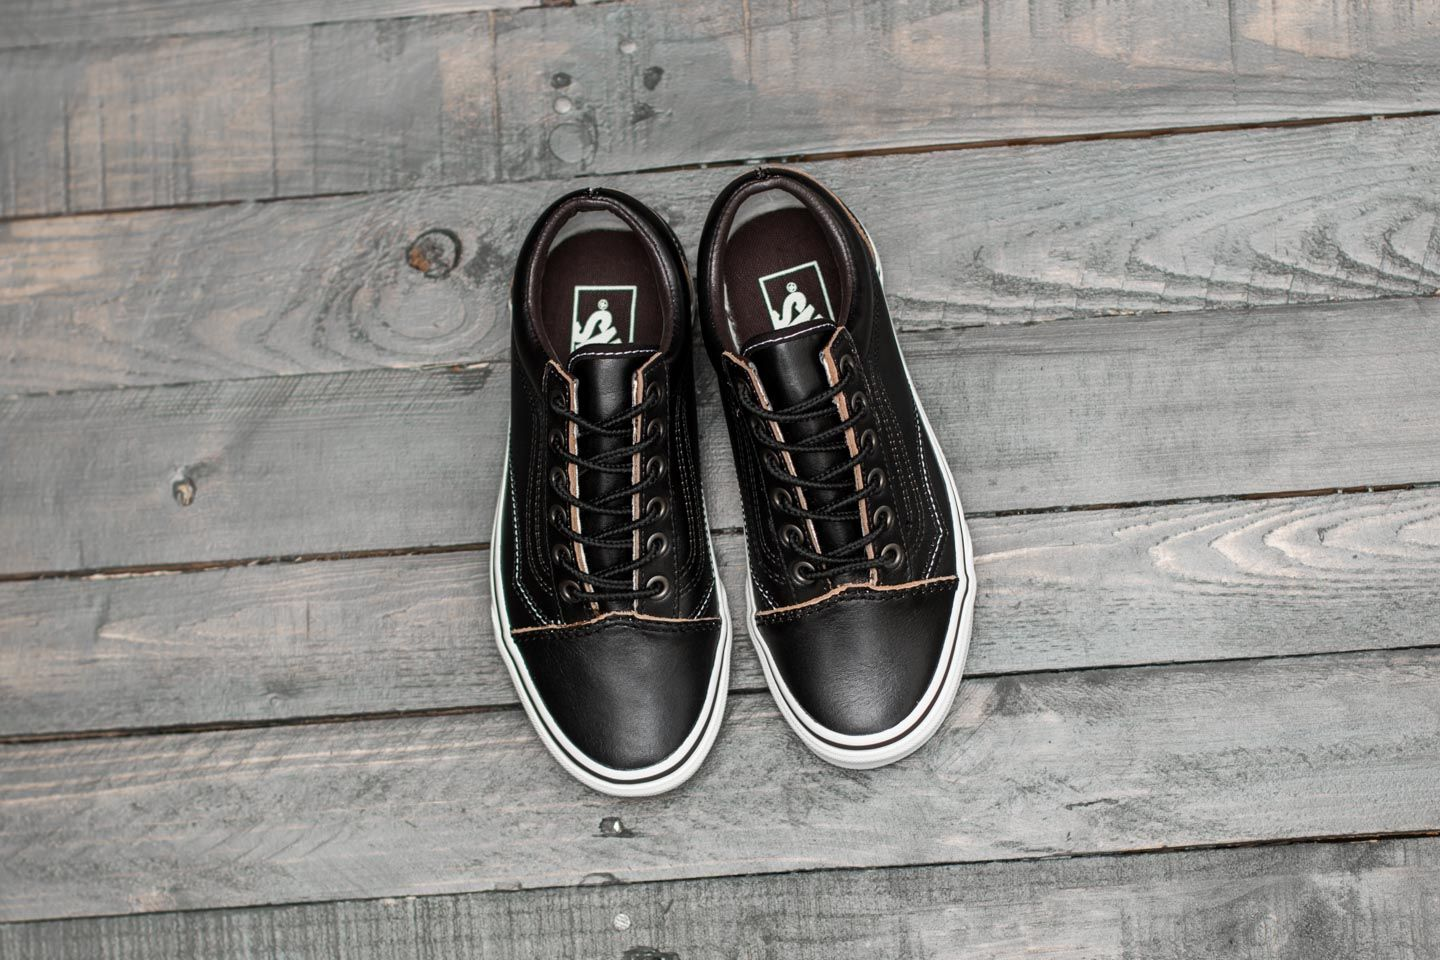 vans groundbreakers